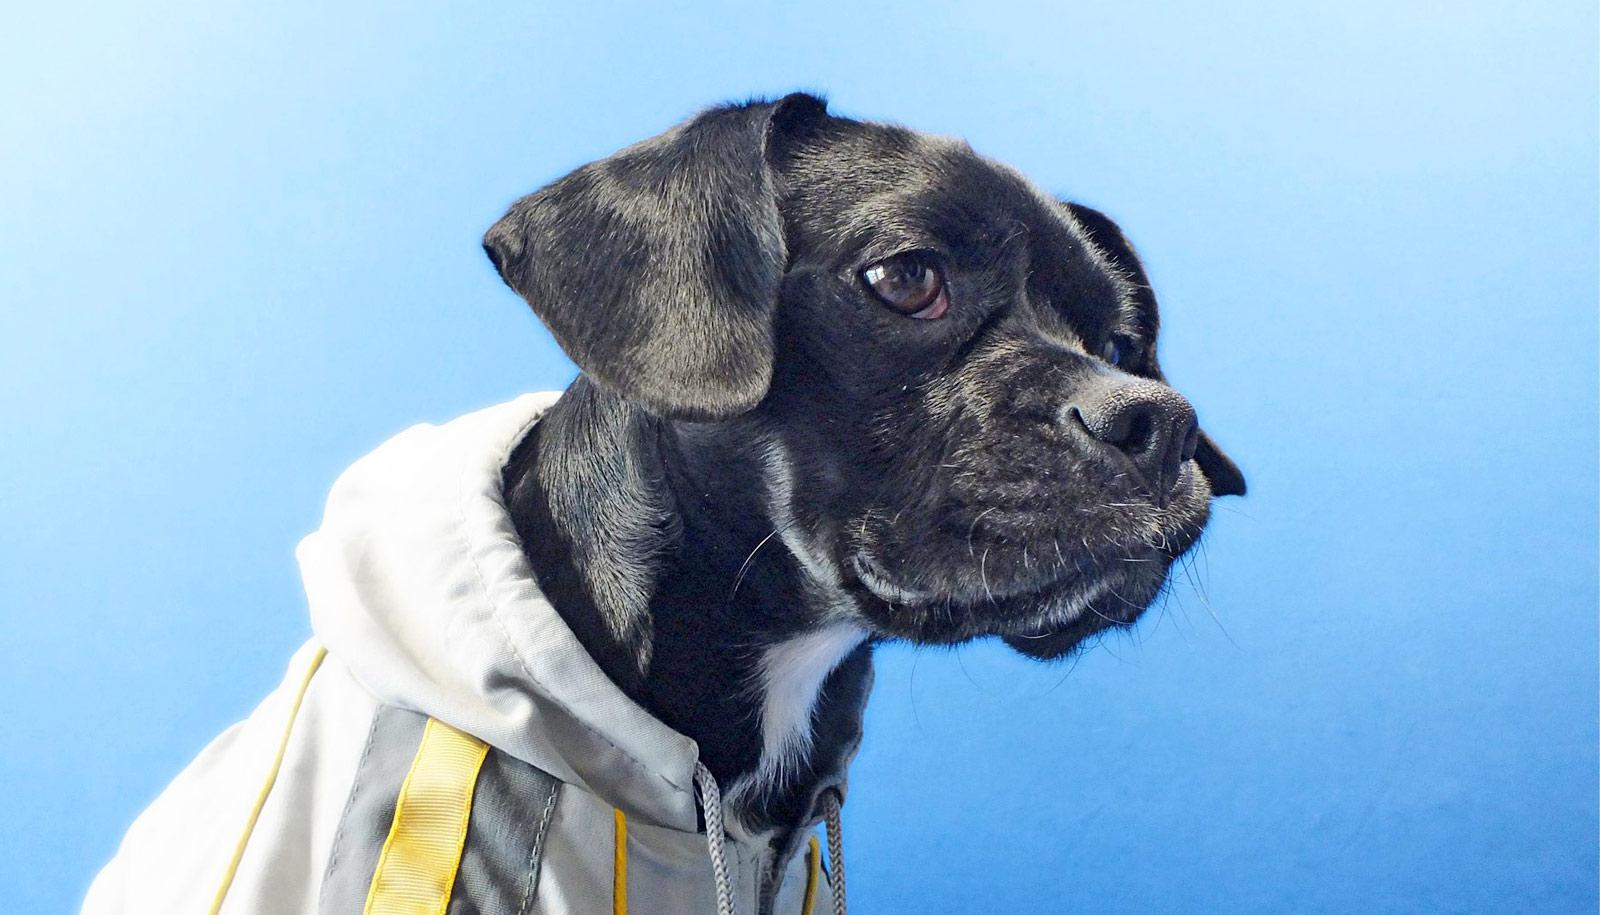 black and white rescue dog in jacket, blue background